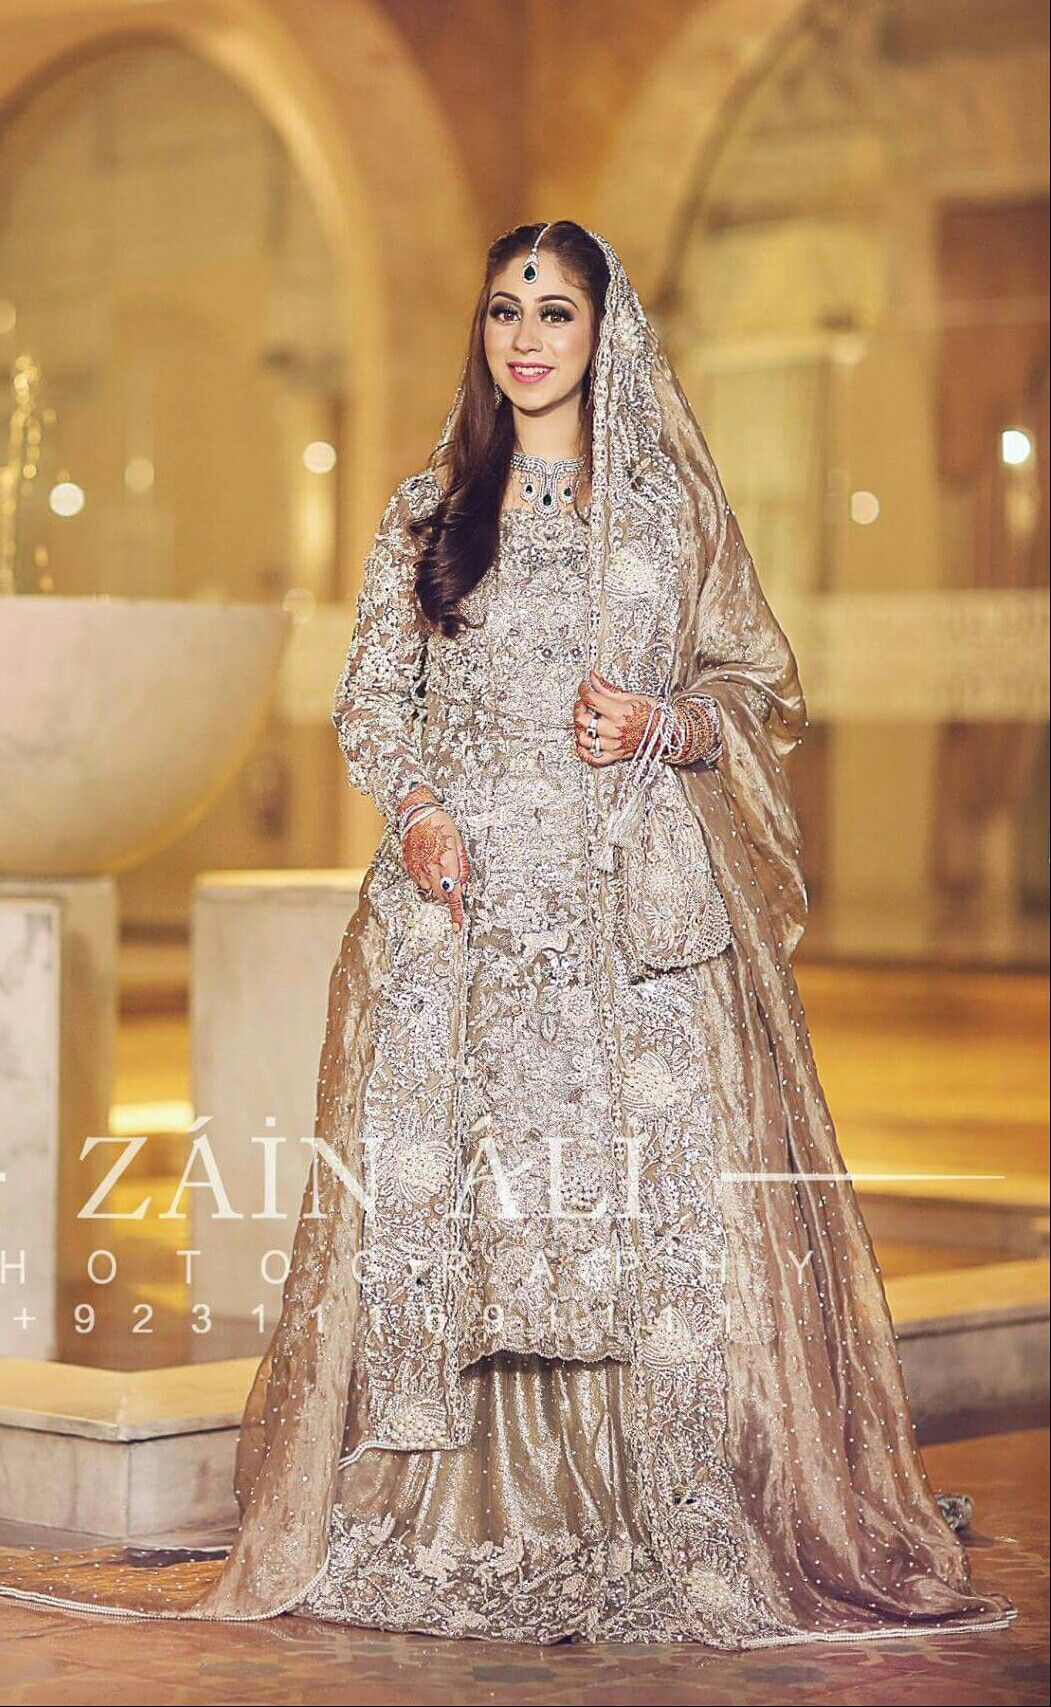 Pin By Alina Ch On Bridal Dresses Muslim Wedding Dresses Indian